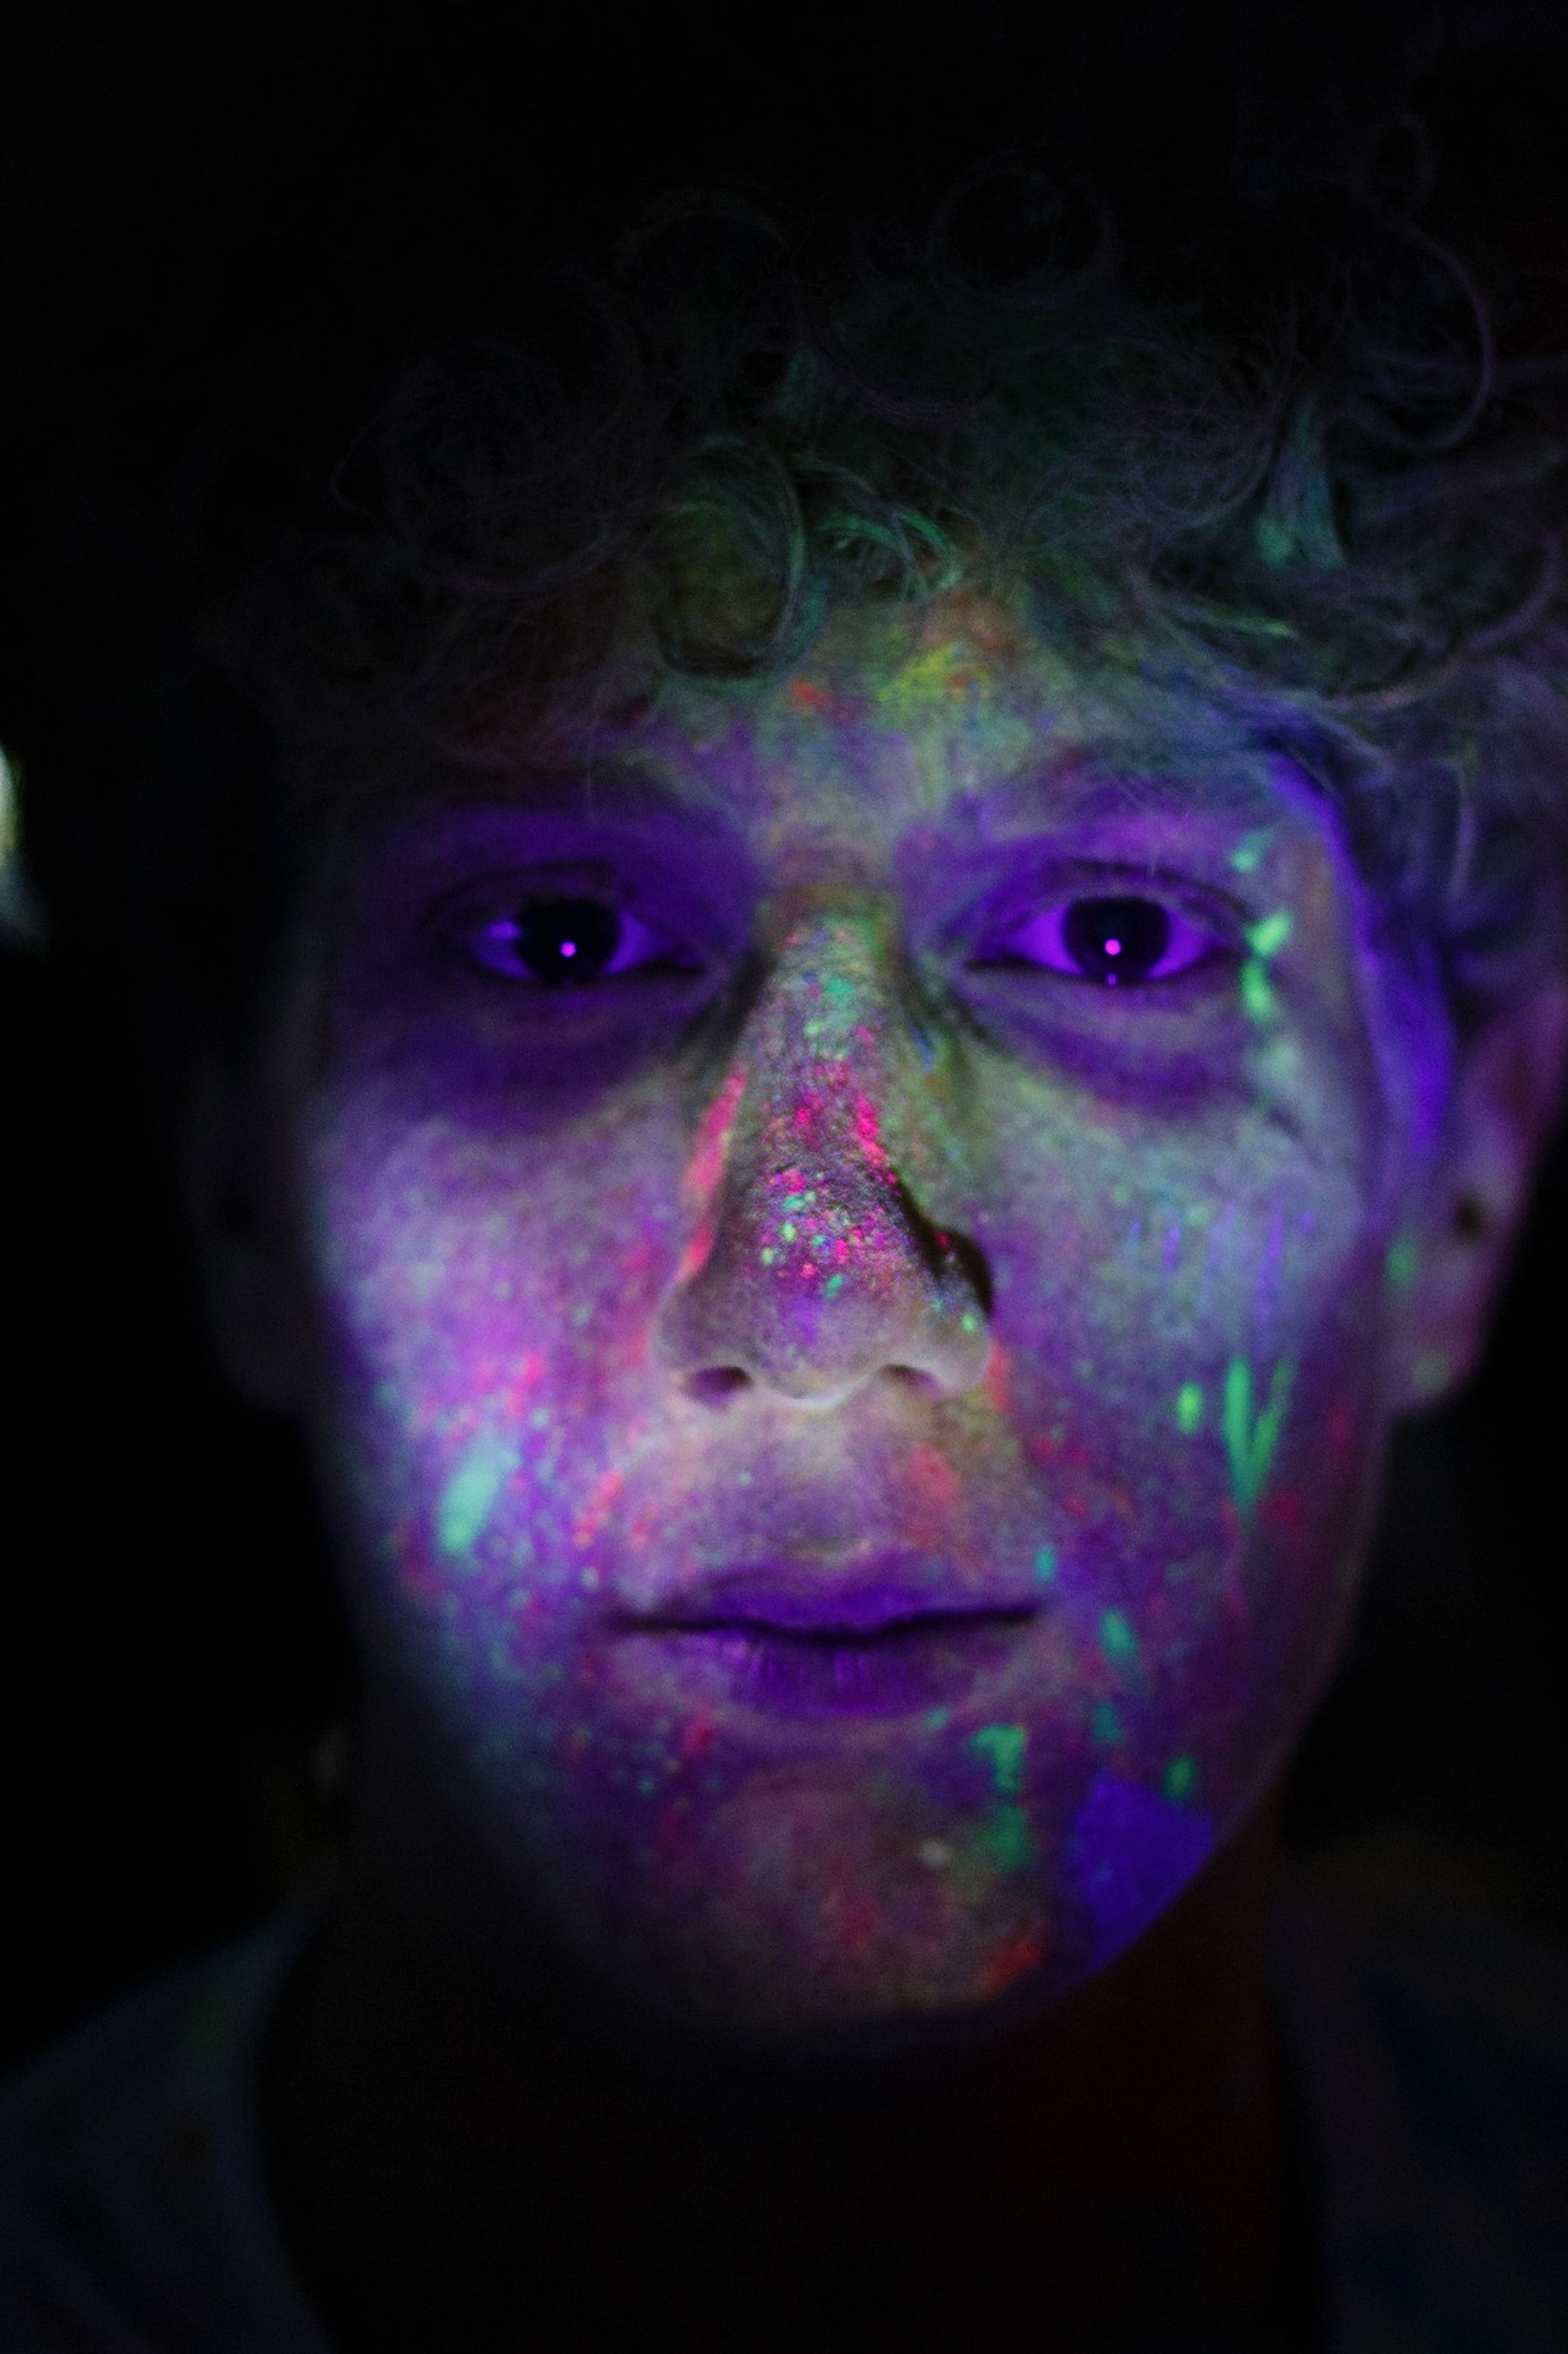 real people, multi colored, one person, headshot, portrait, black background, face paint, holi, men, close-up, young adult, outdoors, day, adult, people